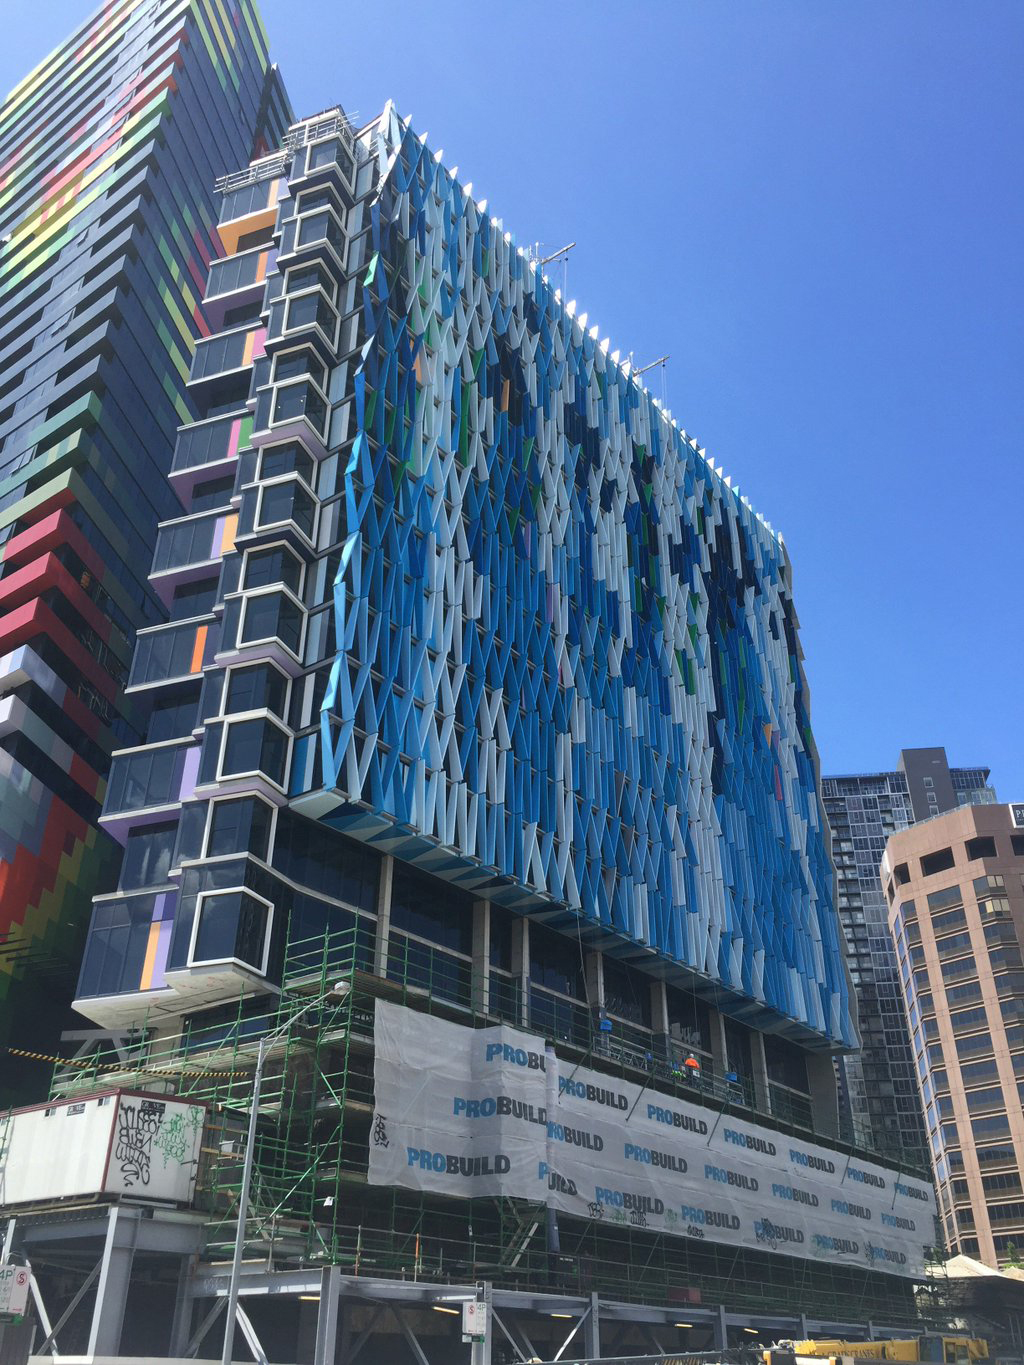 Bouverie Street Apartments, Melbourne, Australia, Studio 505, Probuild, Grocon, Vitreflon, A I Coatings, Lumiflon FEVE Resin, Photography, Probuild Aust